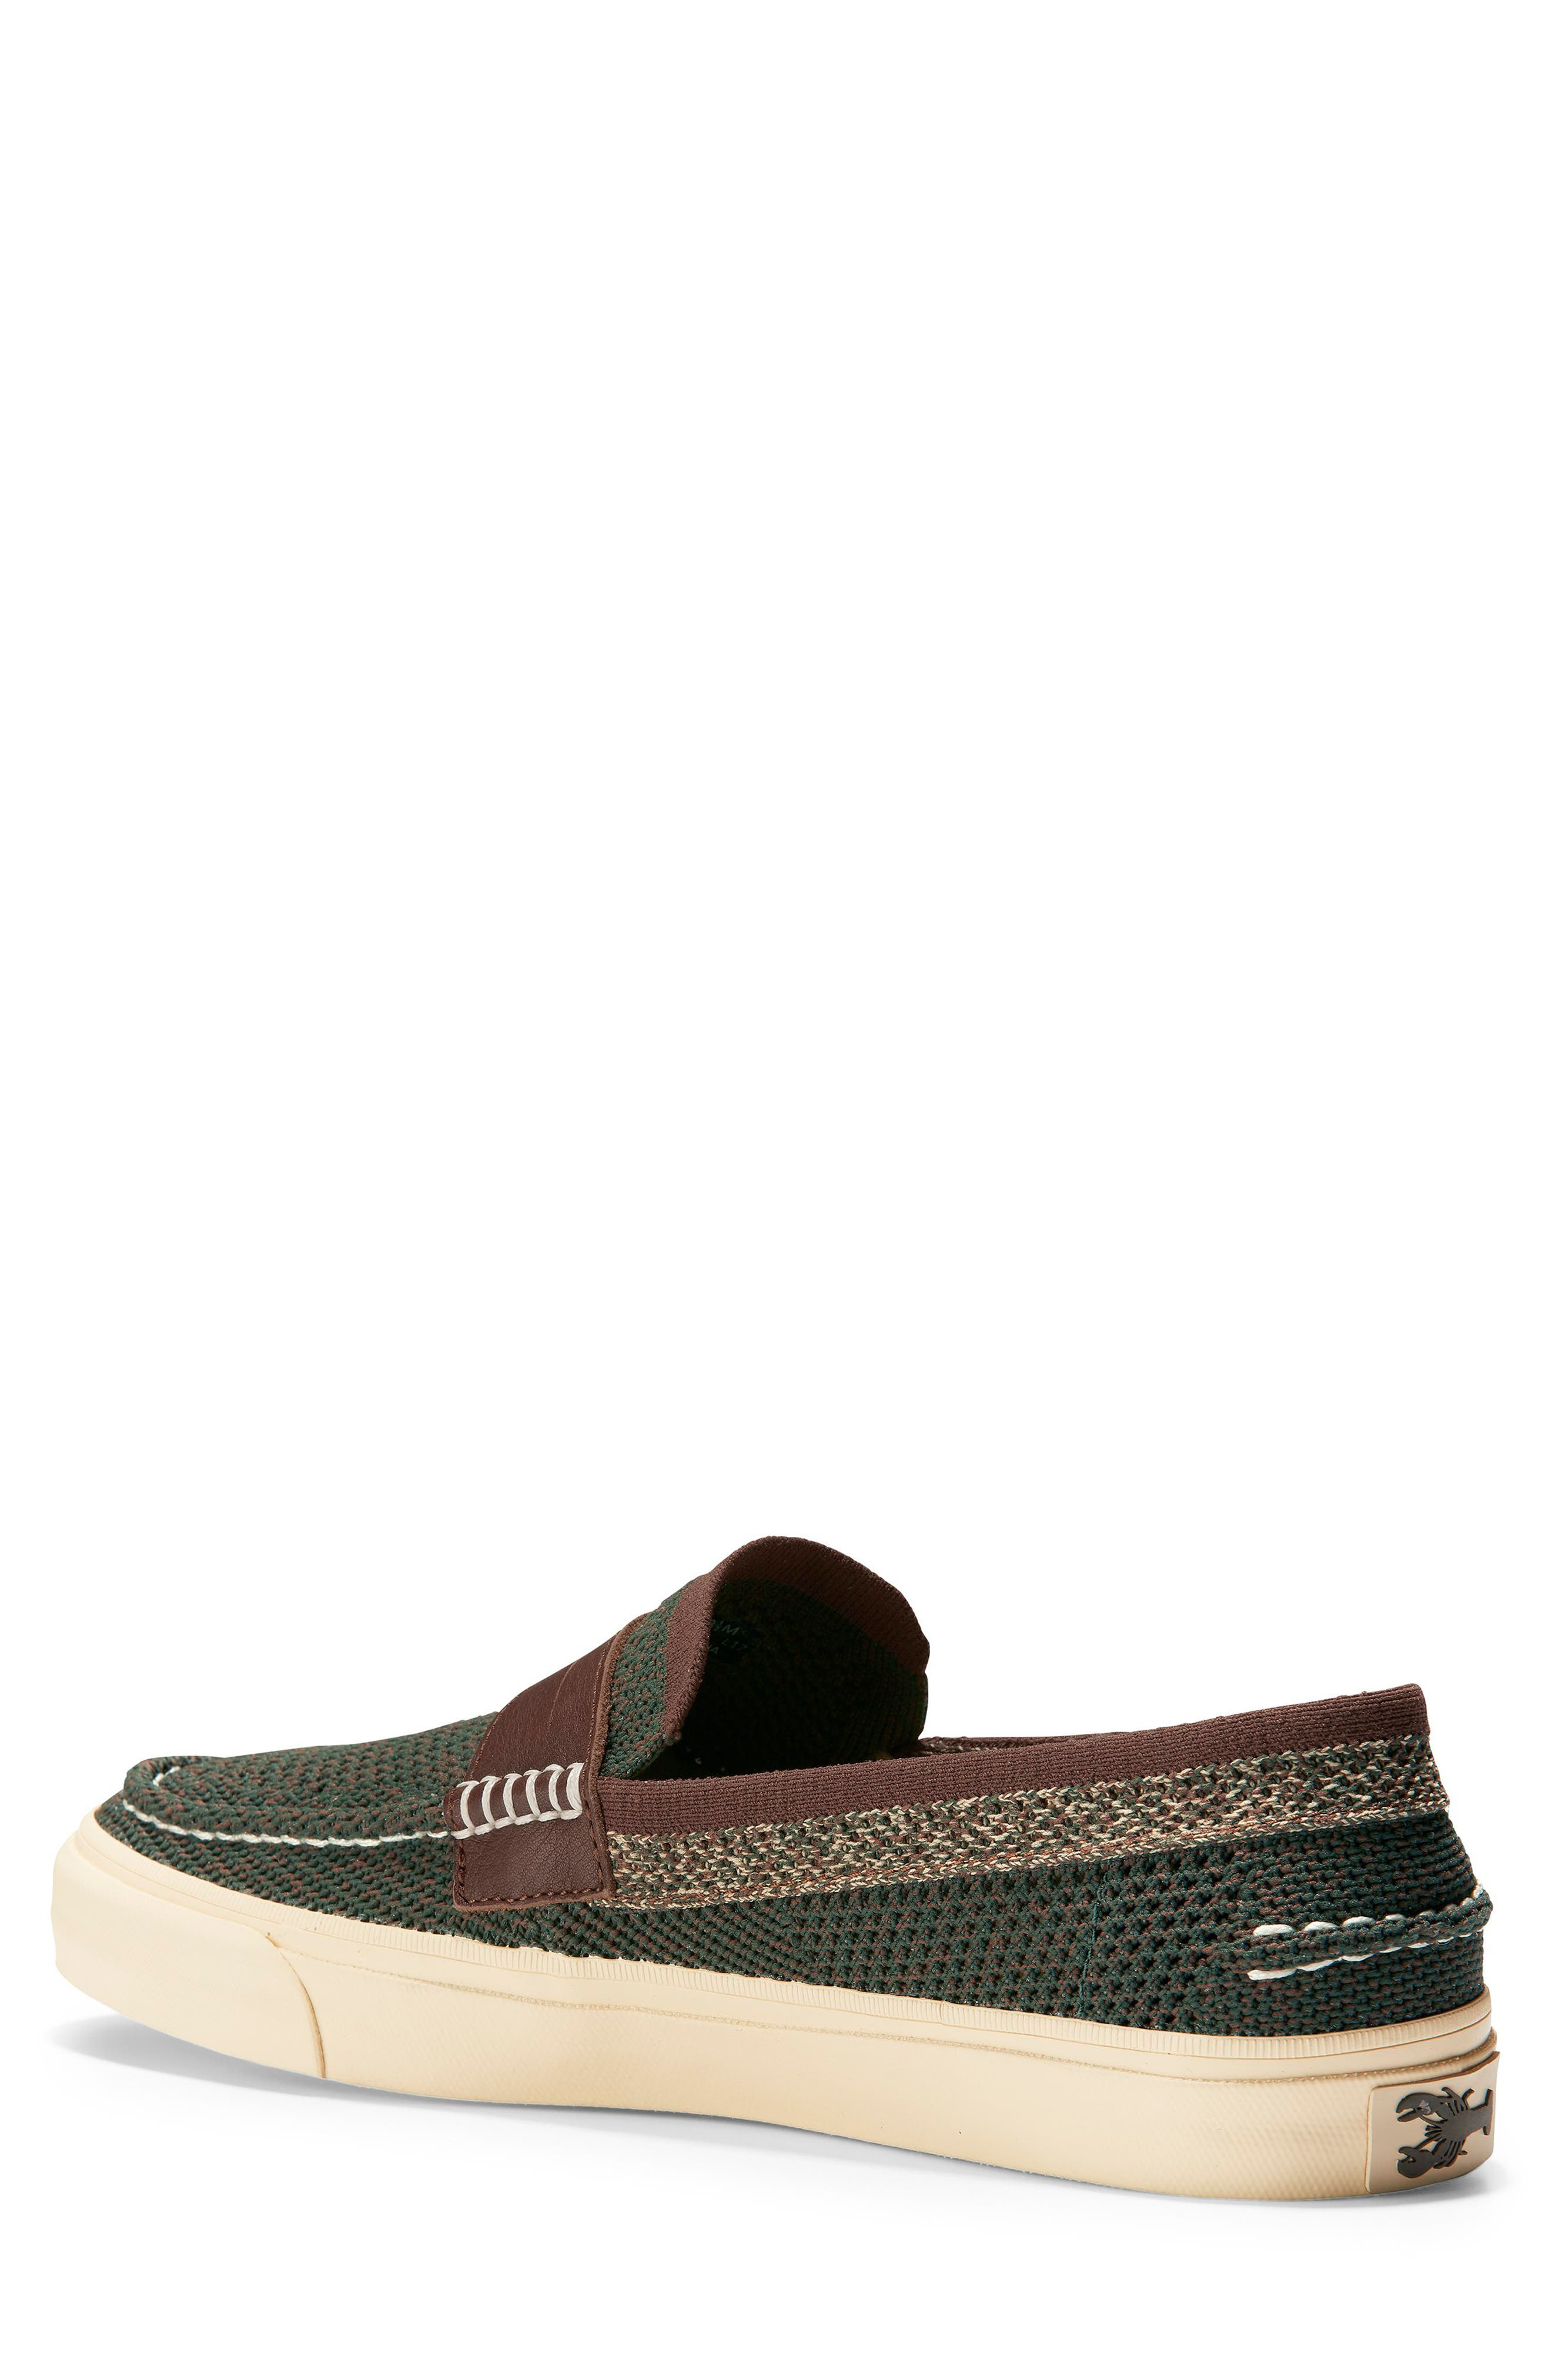 Pinch Weekend LX Penny Loafer,                             Alternate thumbnail 17, color,